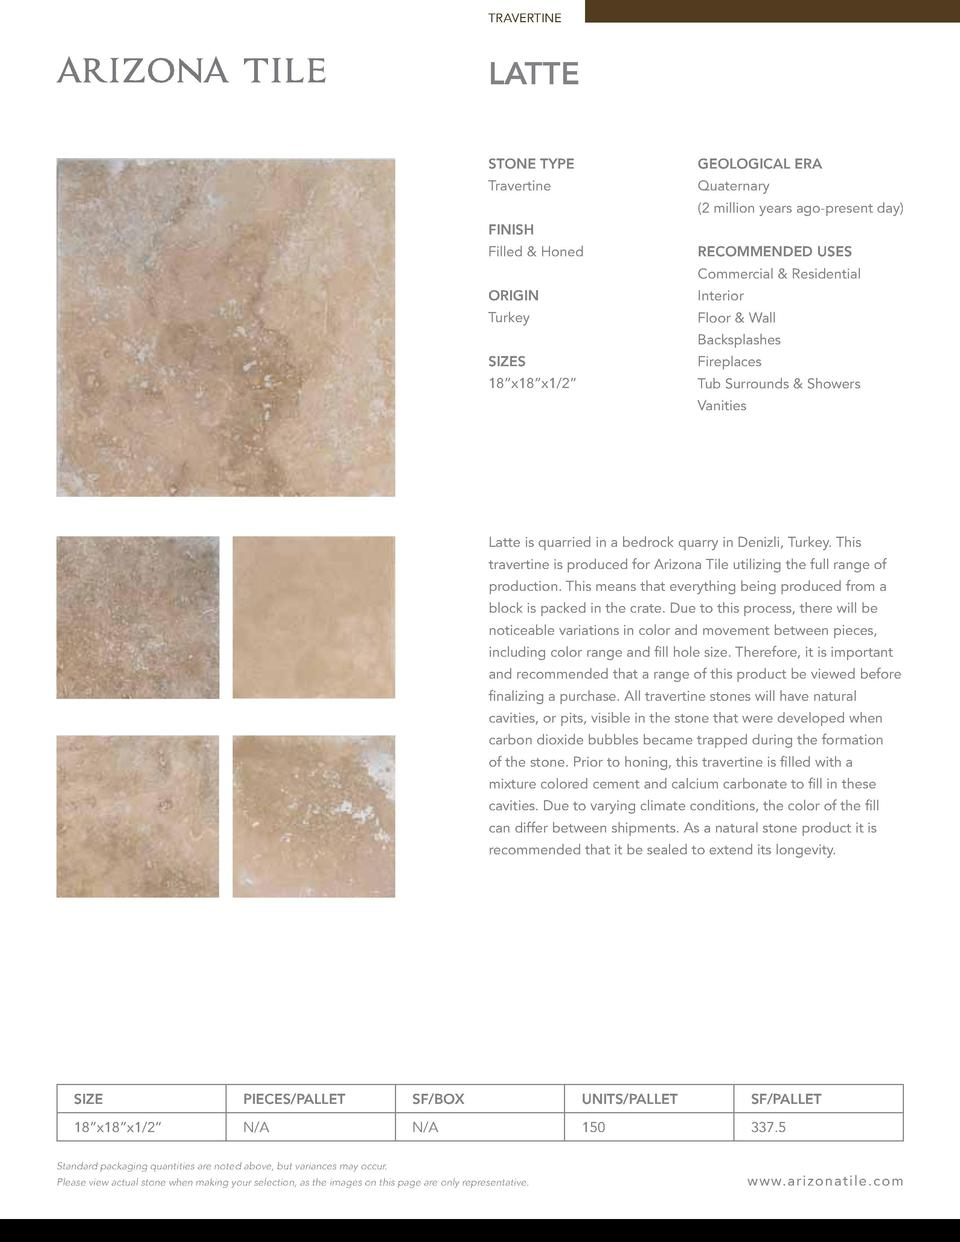 TRAVERTINE  LATTE STONE TYPE  GEOLOGICAL ERA  Travertine  Quaternary  2 million years ago-present day   FINISH Filled   Ho...